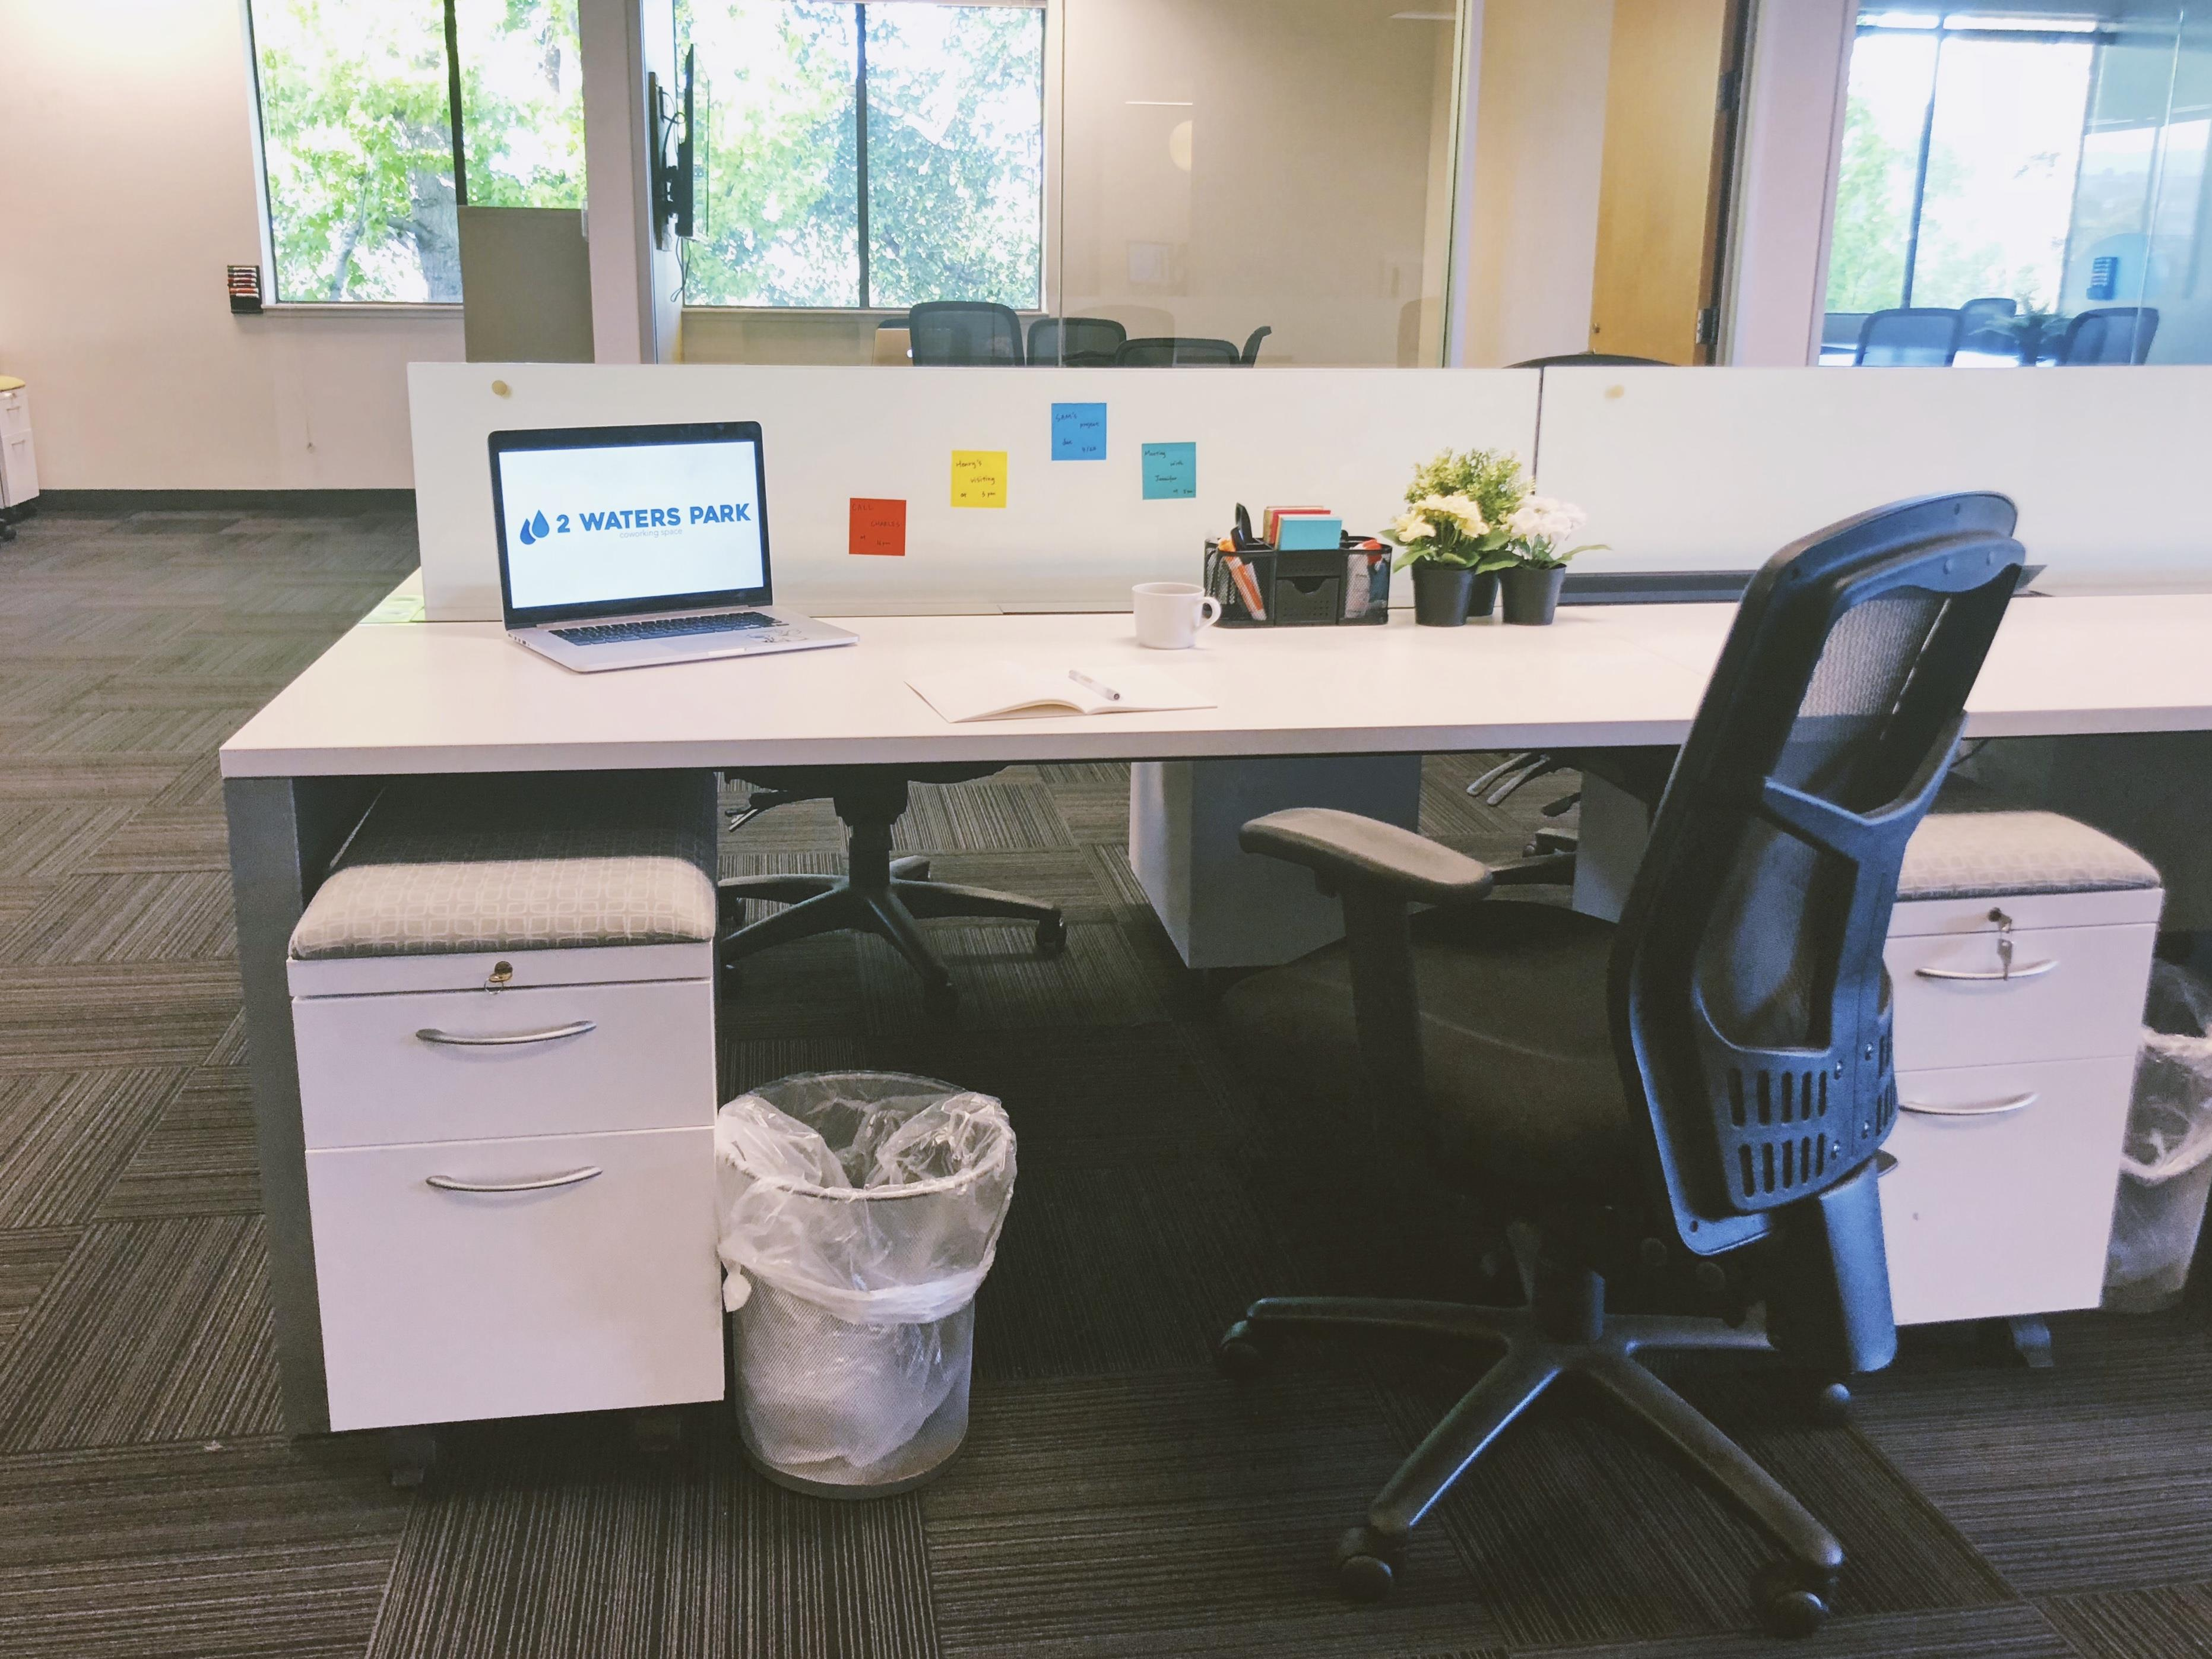 2 Waters Park - Membership with Shared Desk